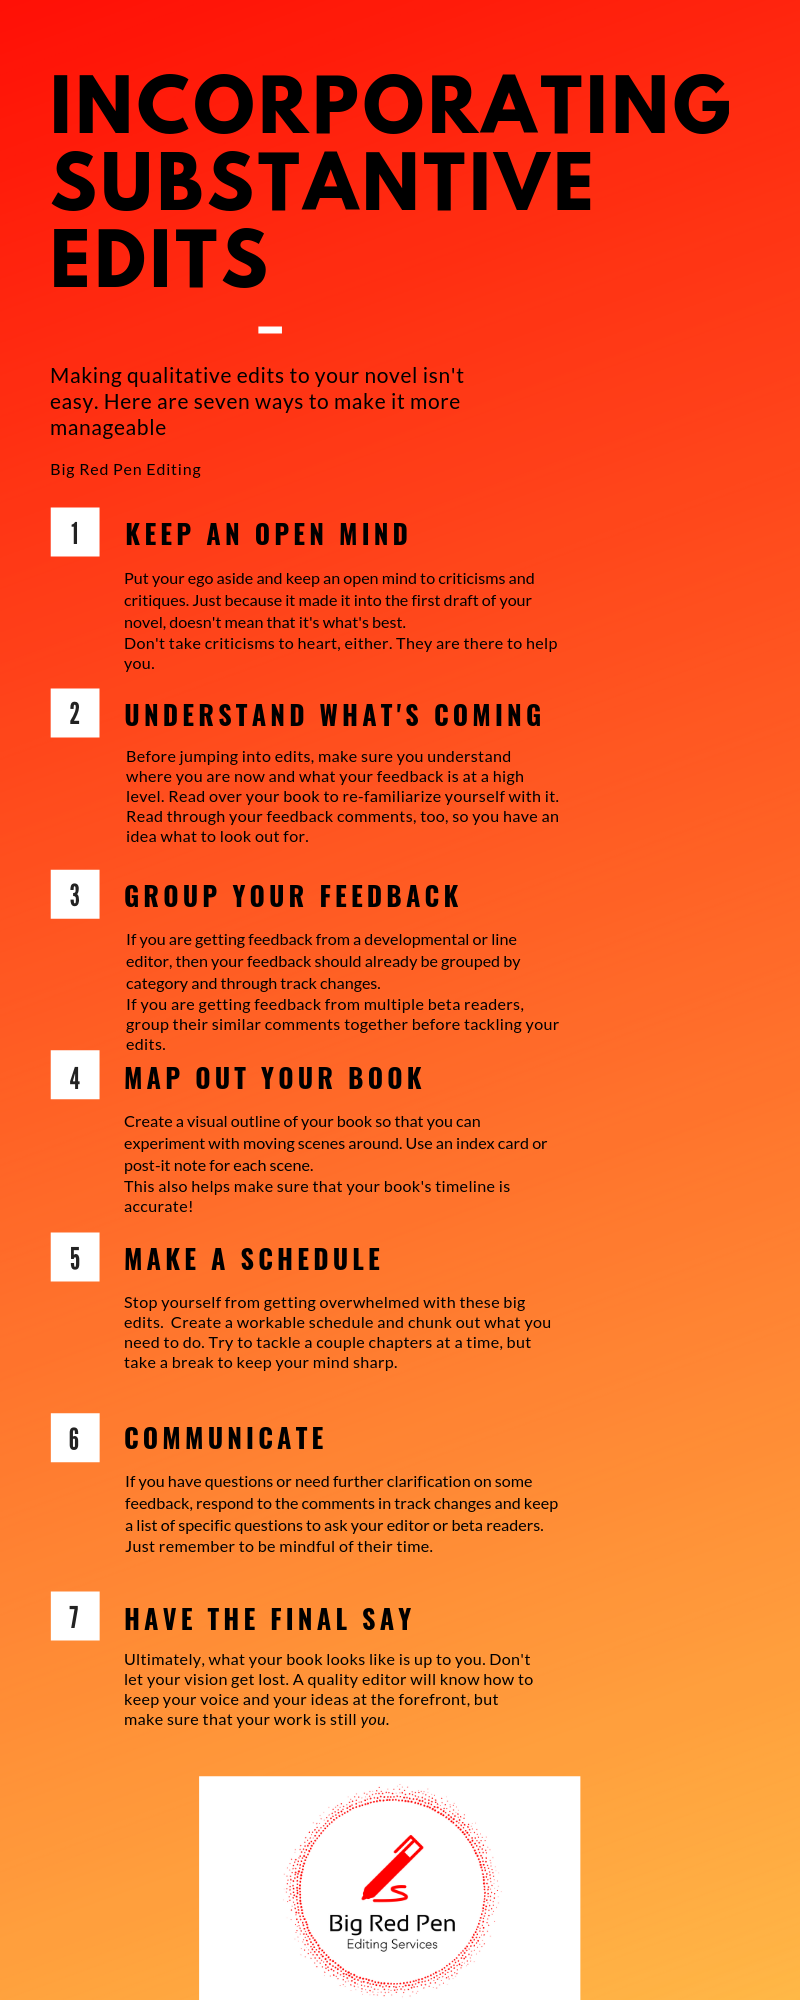 The seven ways to help incorporate your substantive edits